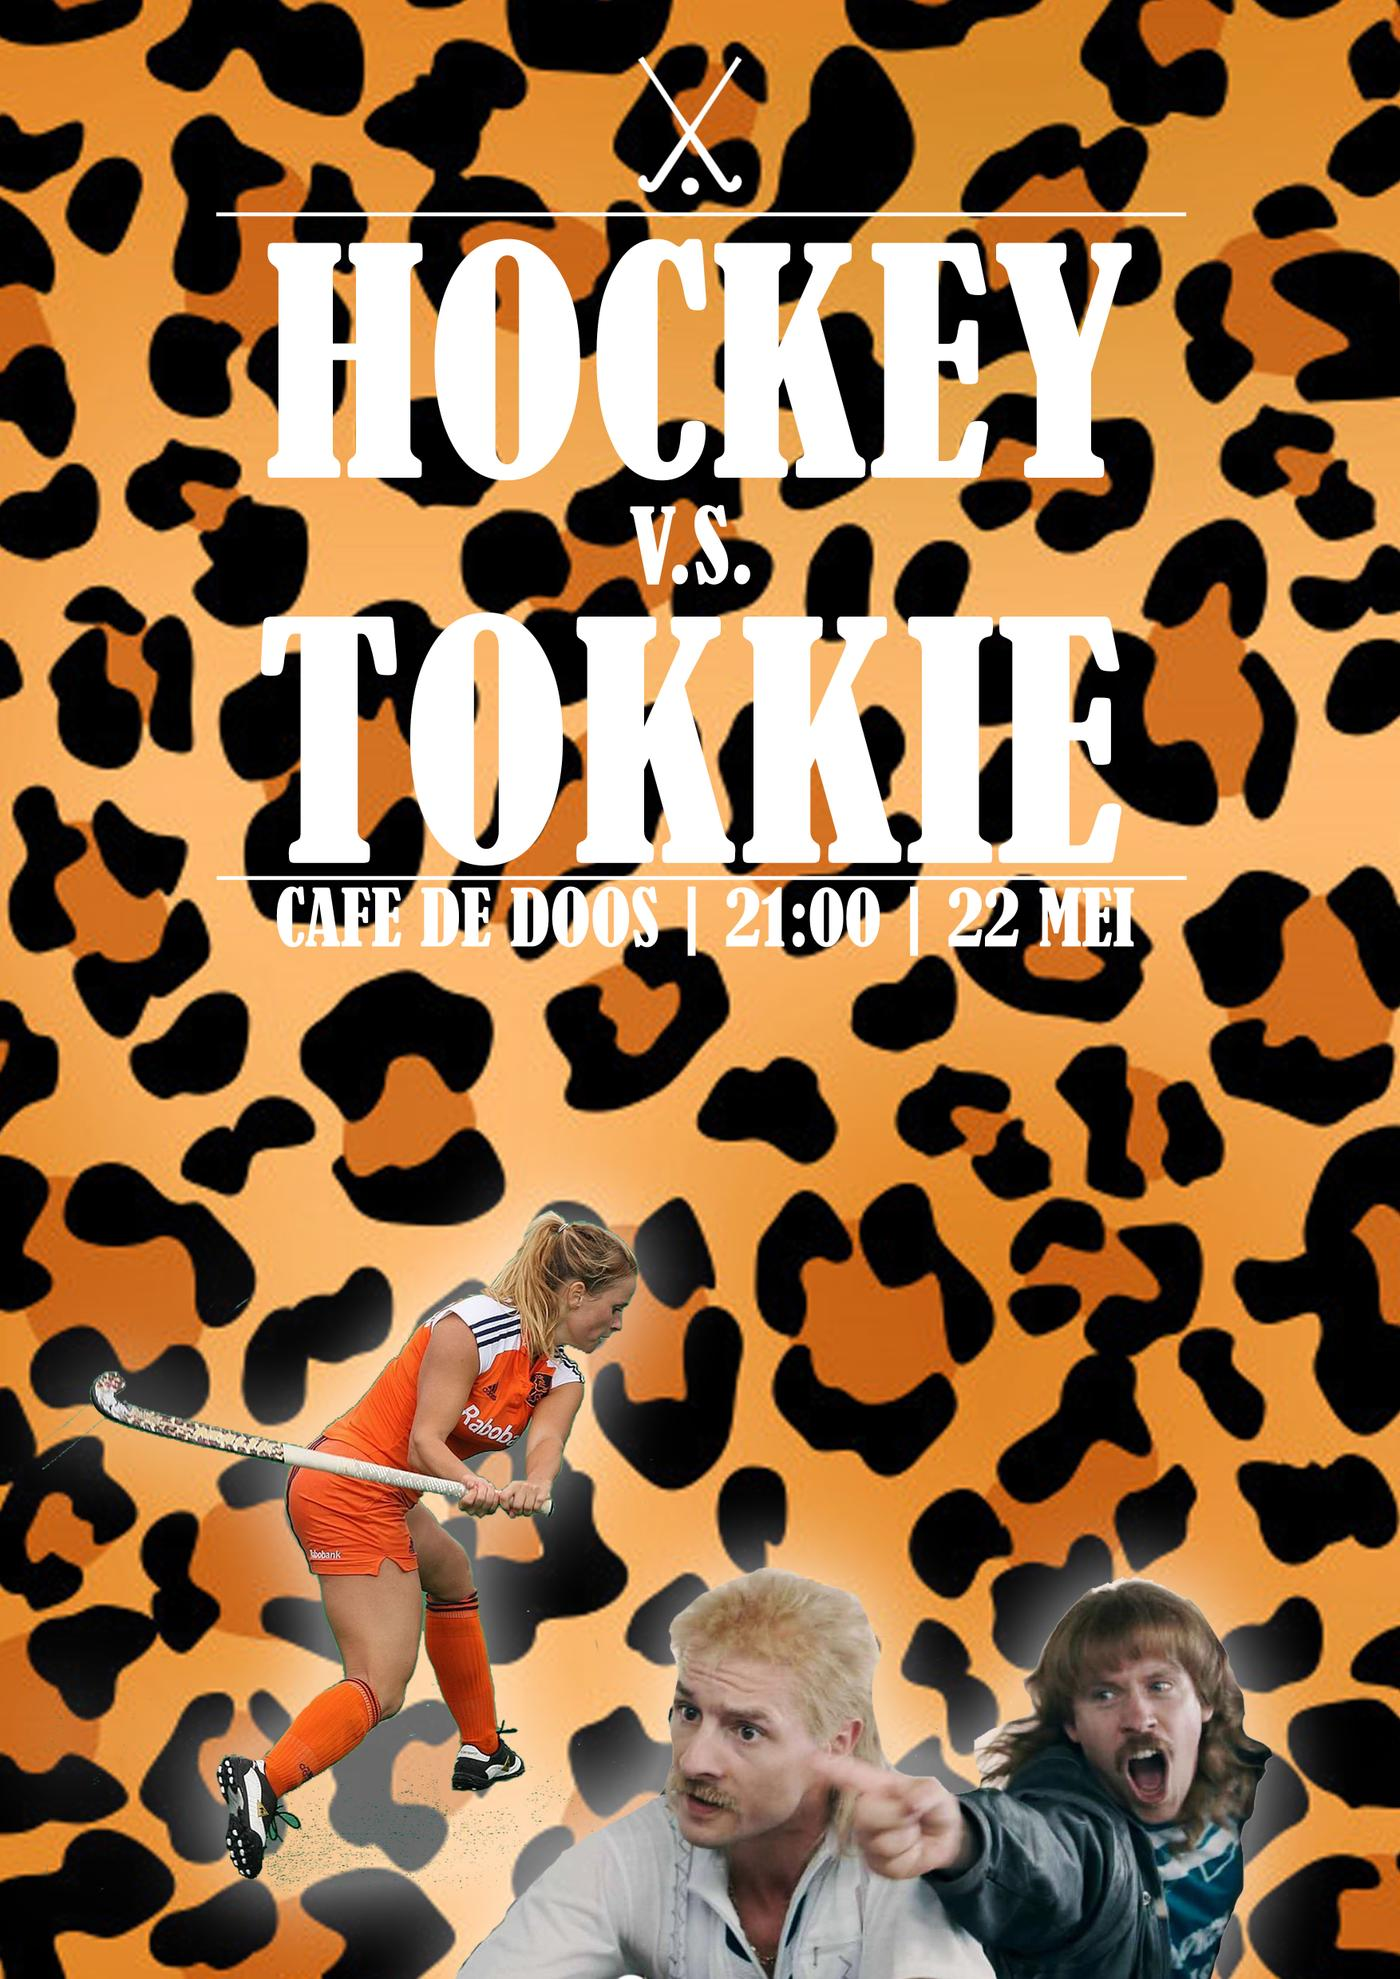 Borrel: Hockey of tokkie?